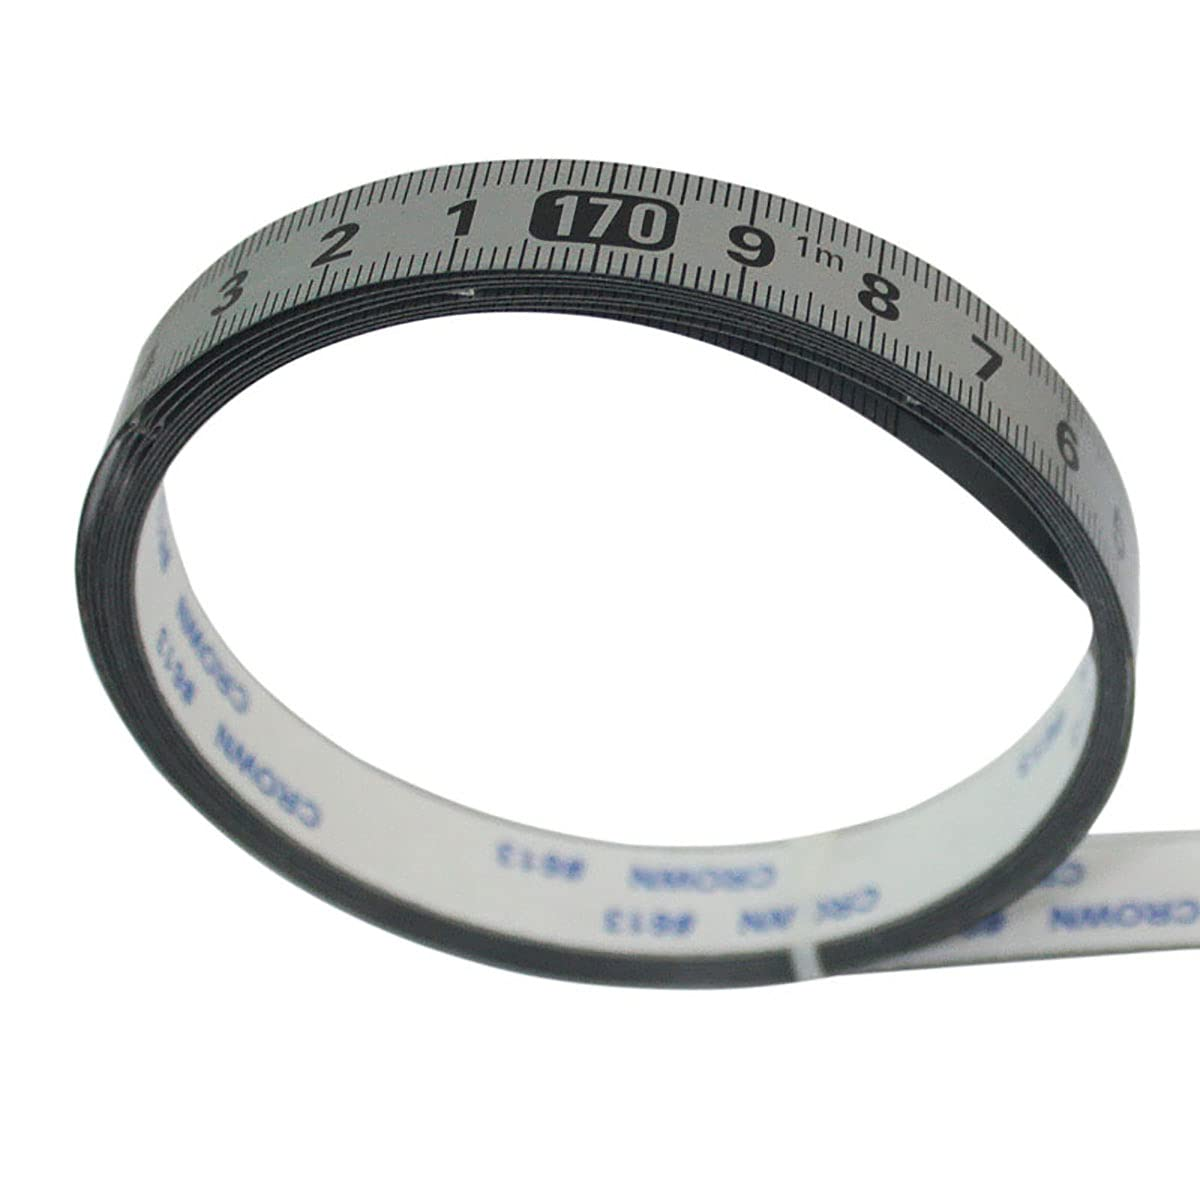 1PCS Carbon Steel Self-Adhesive Measuring L 2m Tape Ruler Max 74% OFF A surprise price is realized Sticky